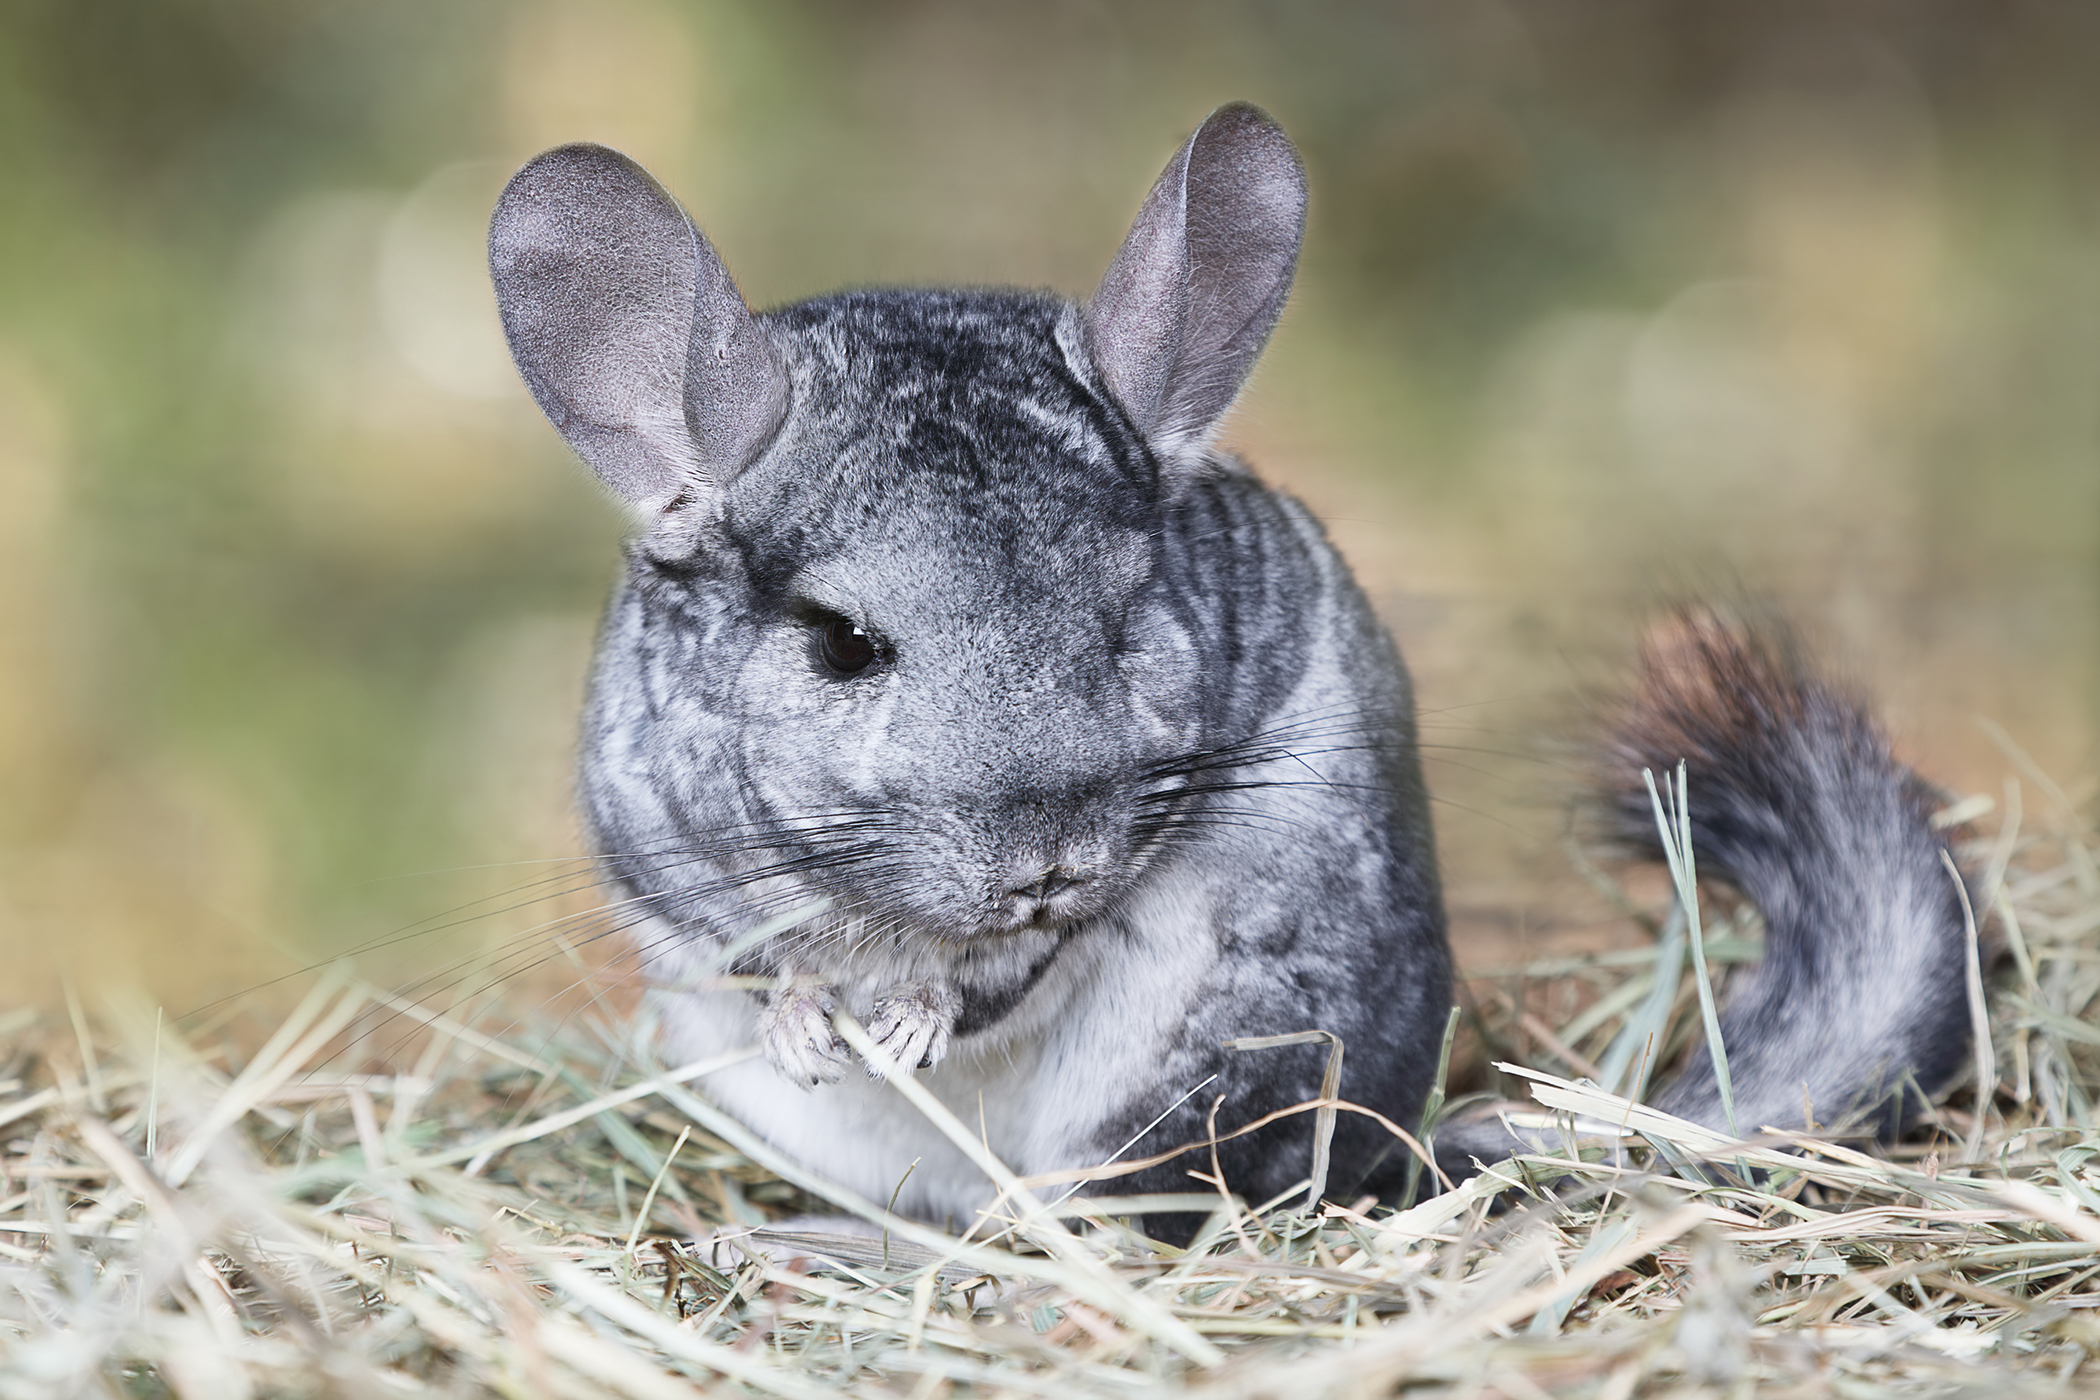 Lack of Milk in Chinchillas